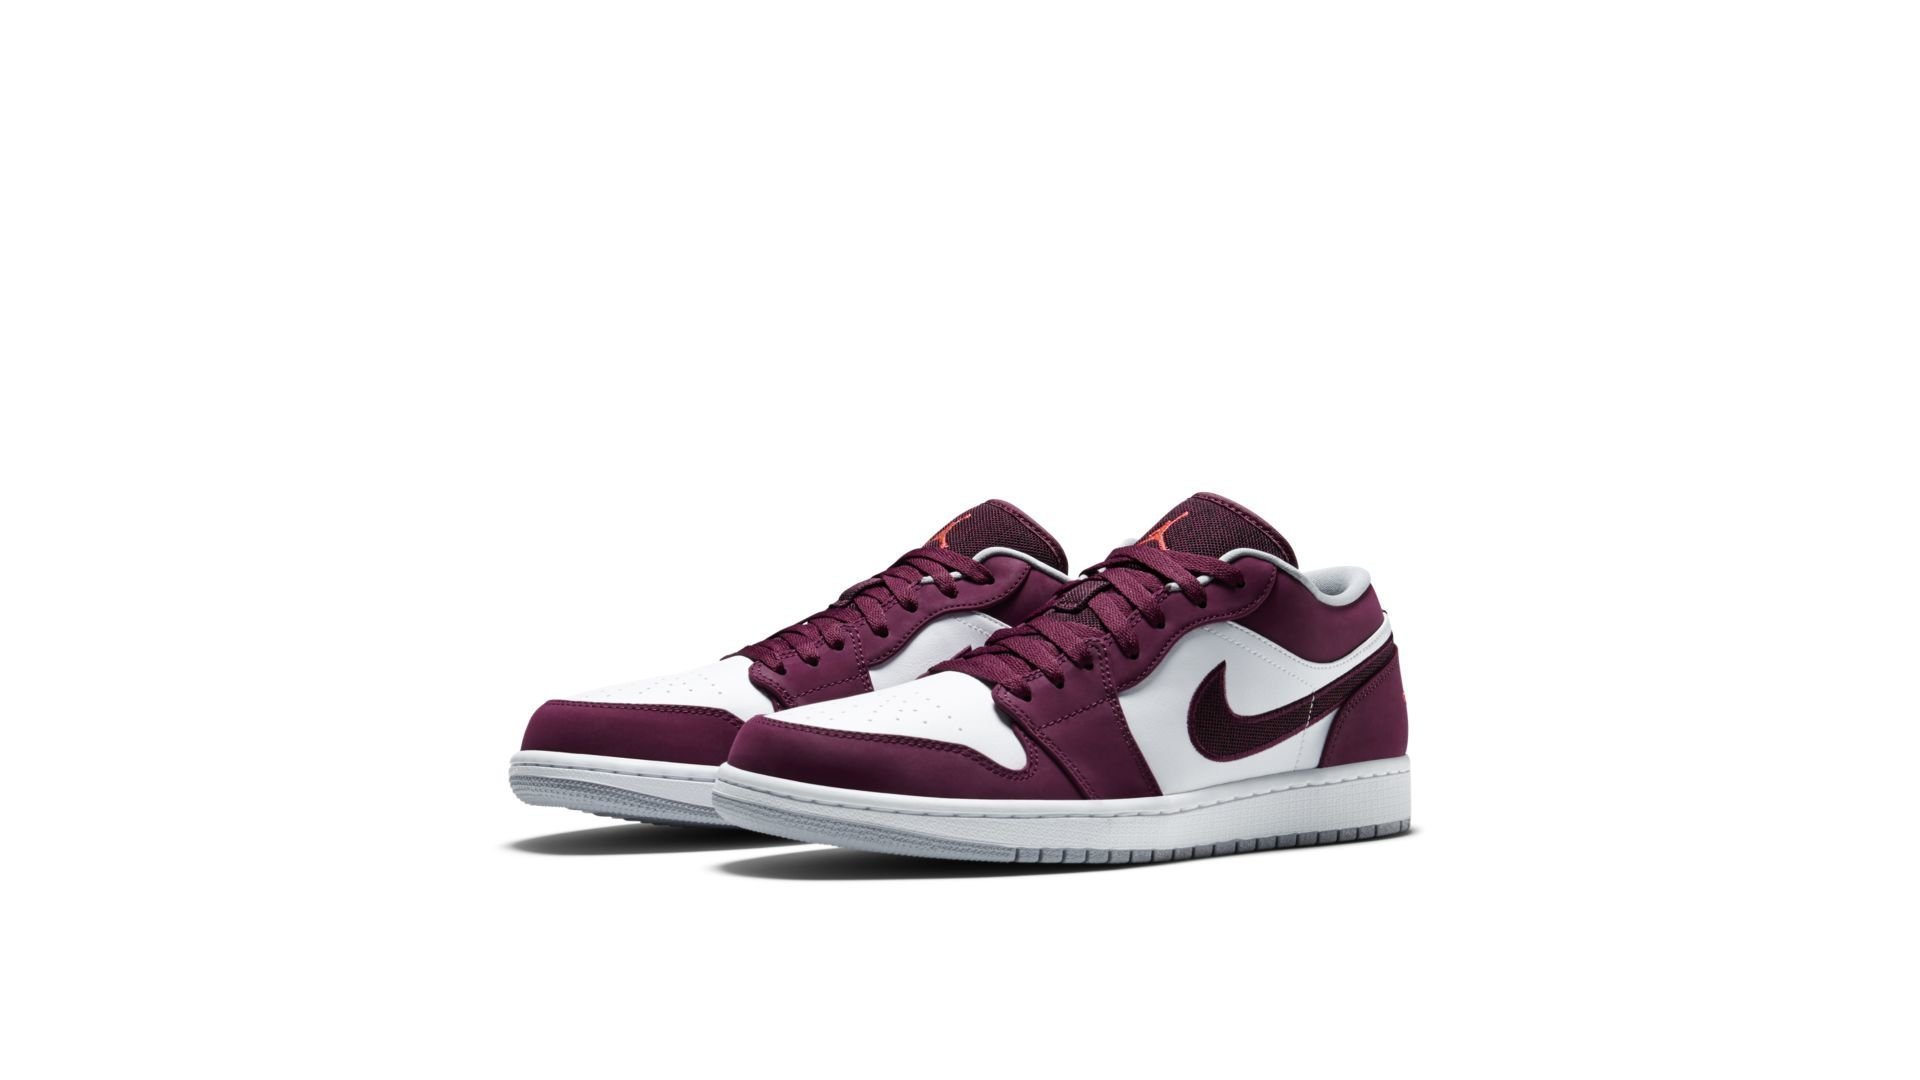 Jordan 1 Low Bordeaux (553558-603)